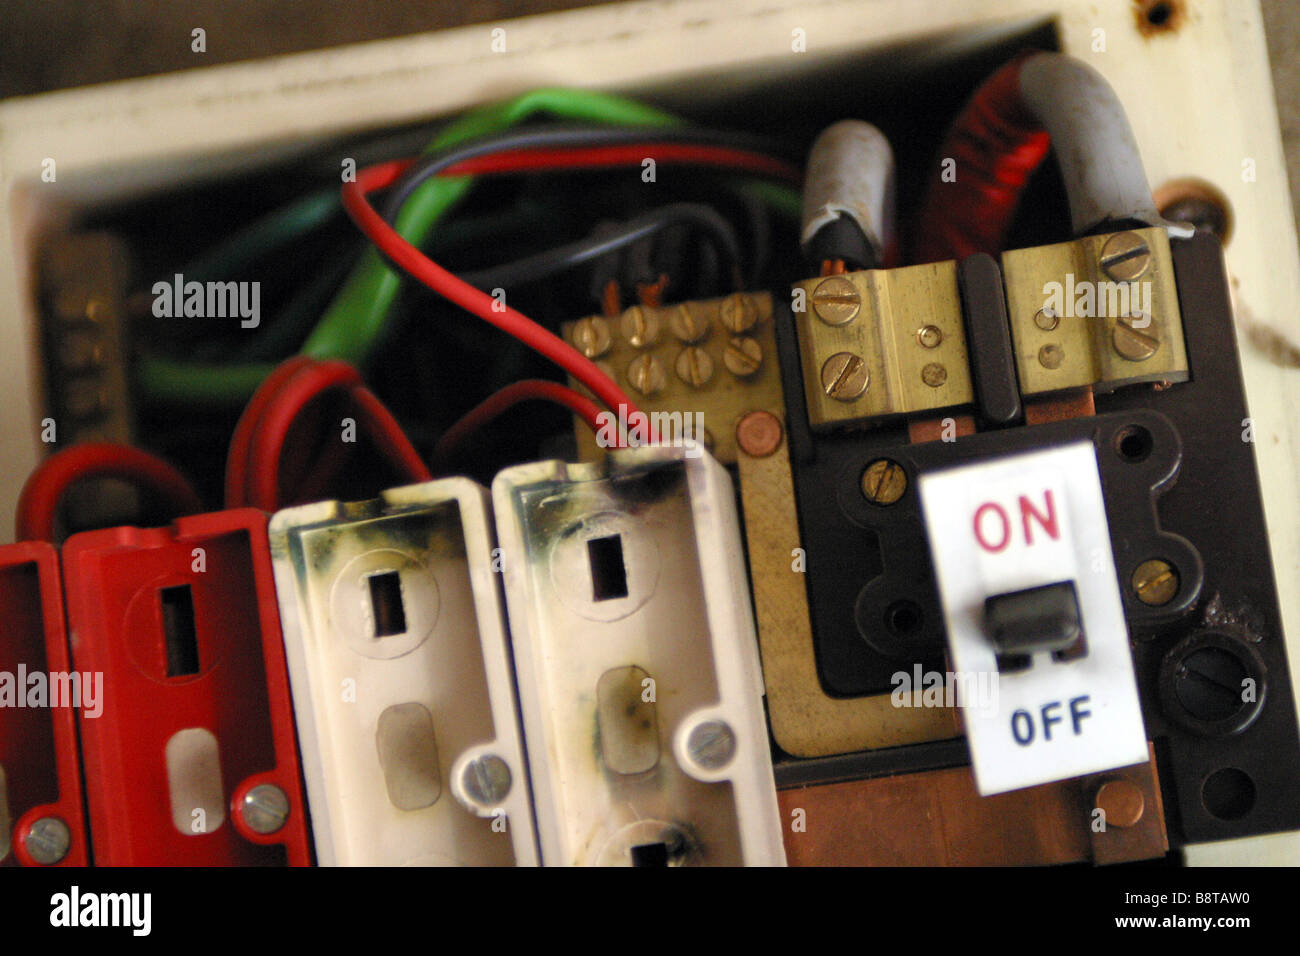 old electrical fuse box stock photos old electrical fuse box stock rh alamy  com old house fuse box wiring old house fuse box problems